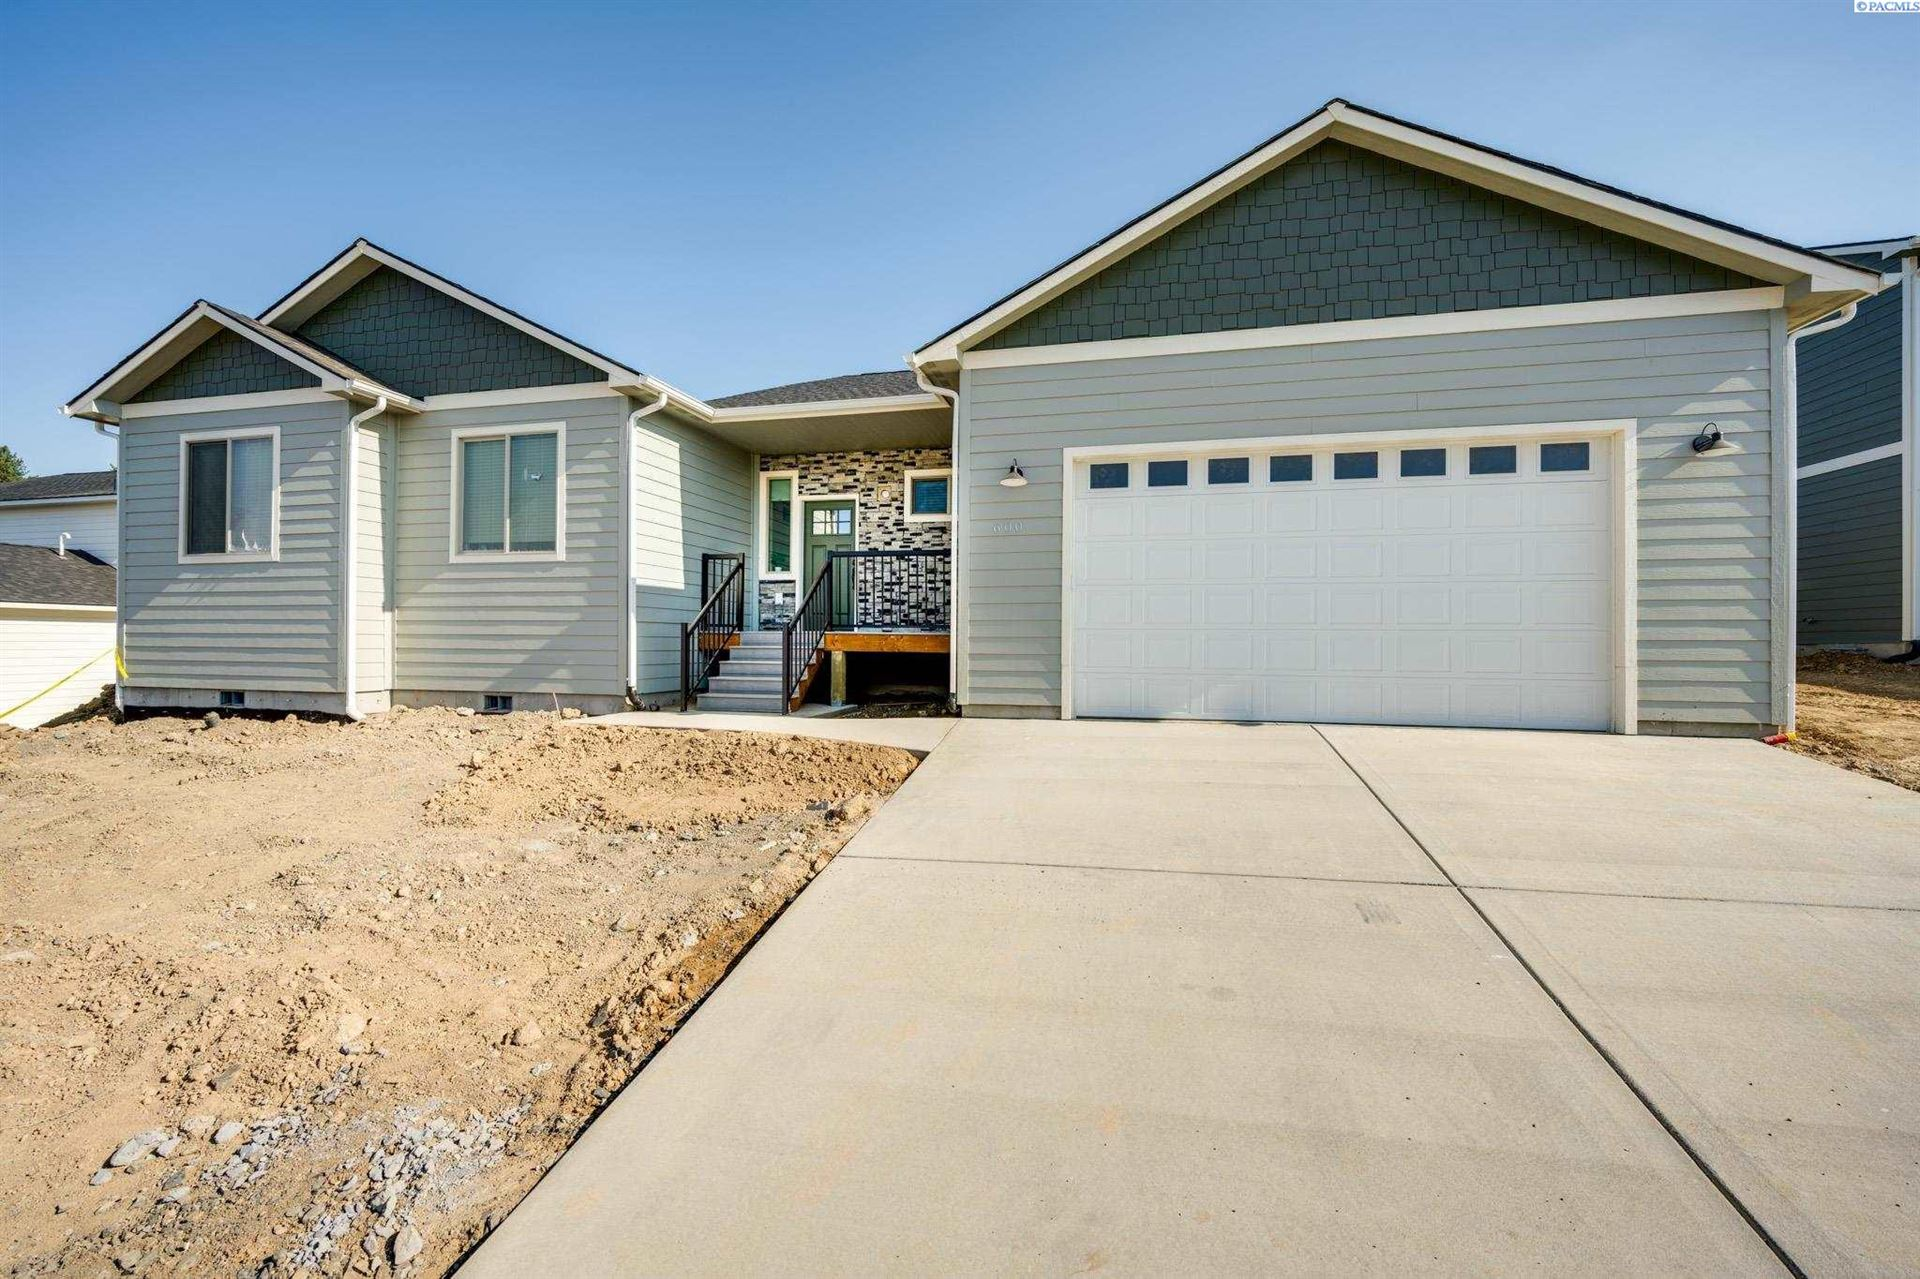 Photo of 600 SW Umatilla St., Pullman, WA 99163 (MLS # 250175)